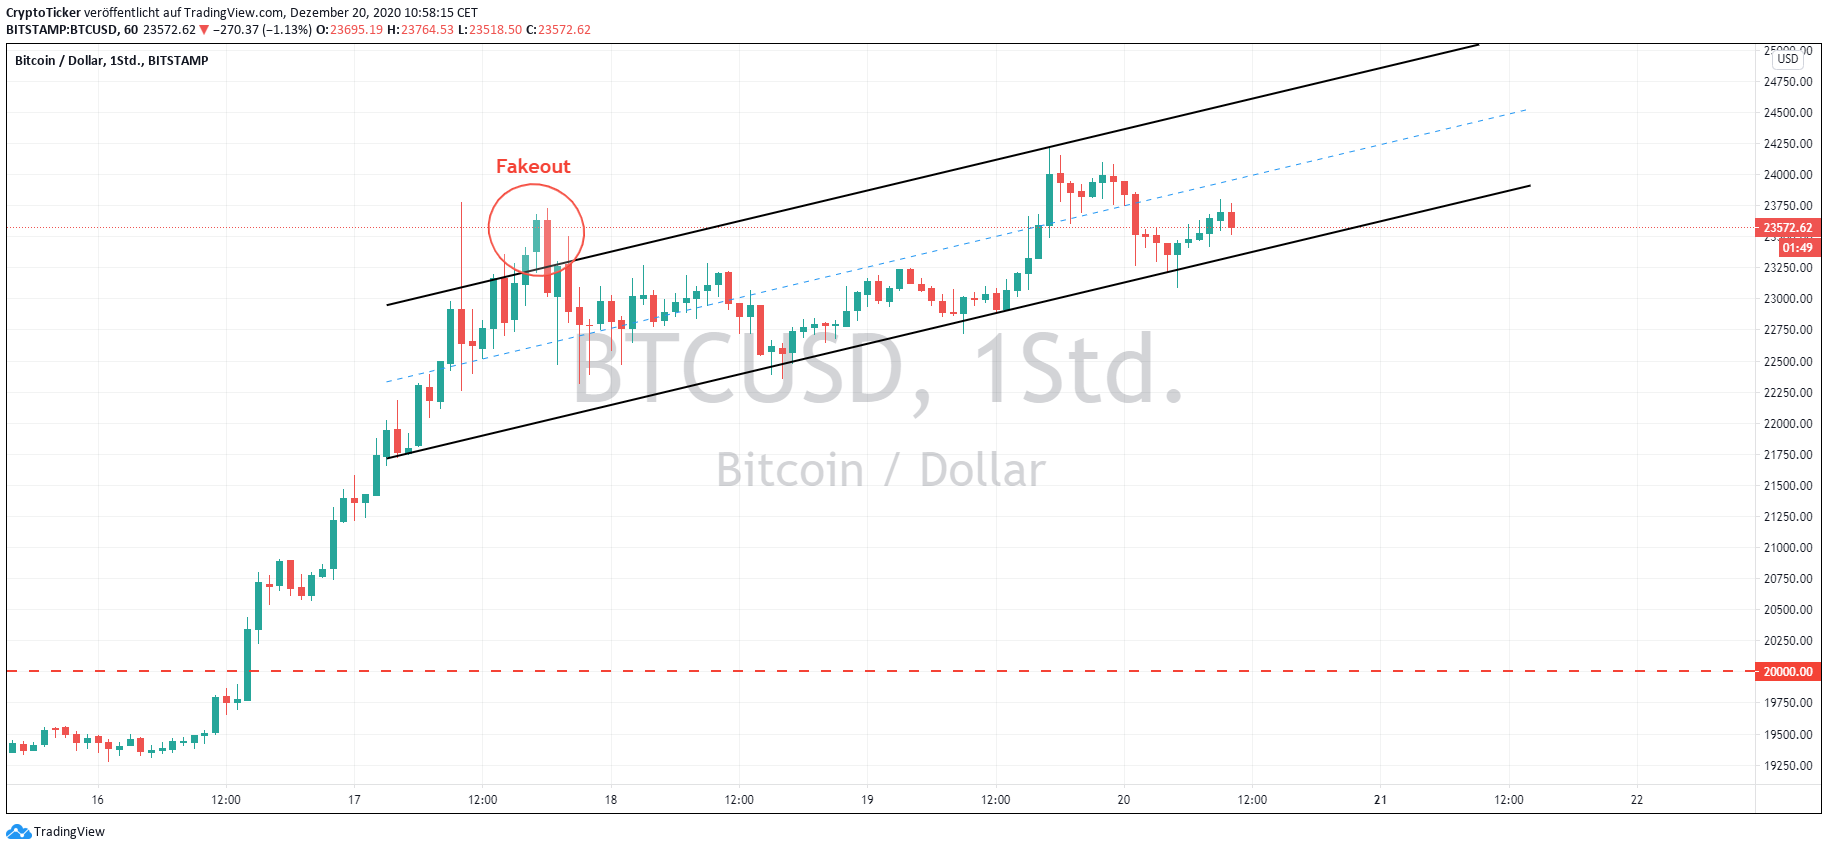 BTC/USD 1-Hour chart – a steady uptrend forming above 20k